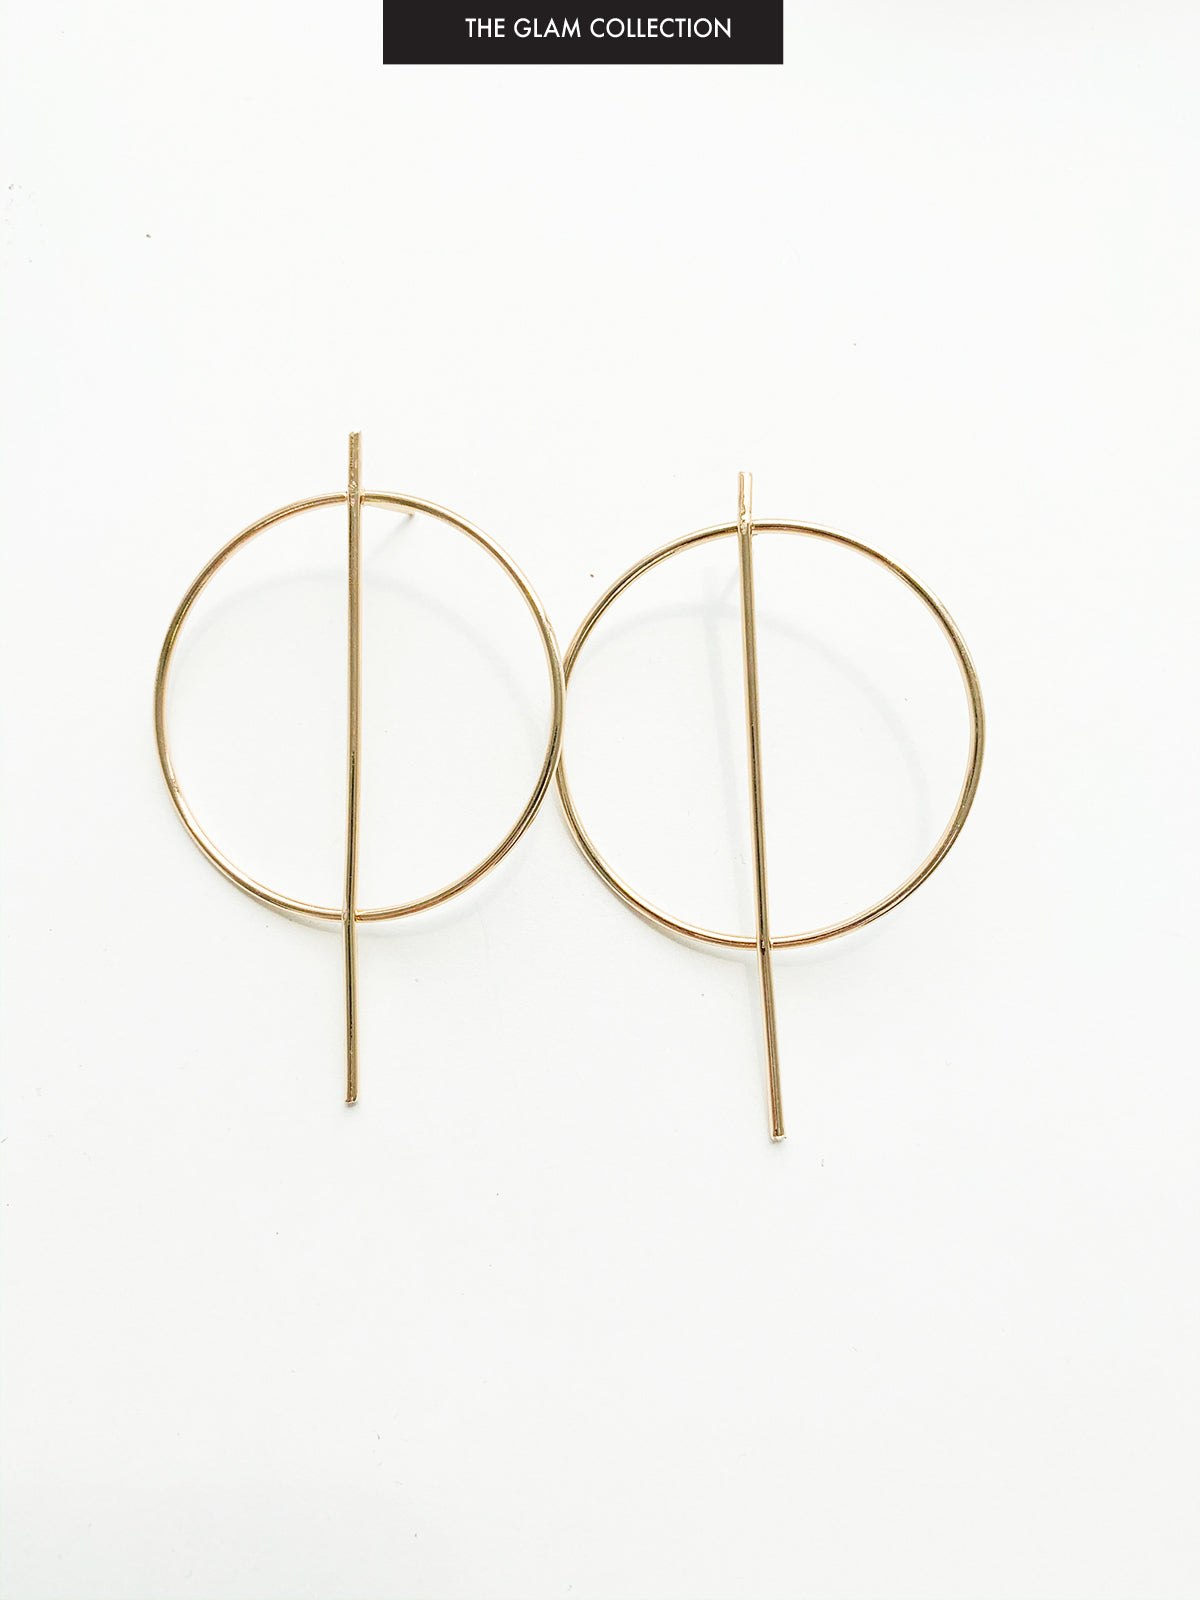 INFINITE BLISS GOLD EARRINGS